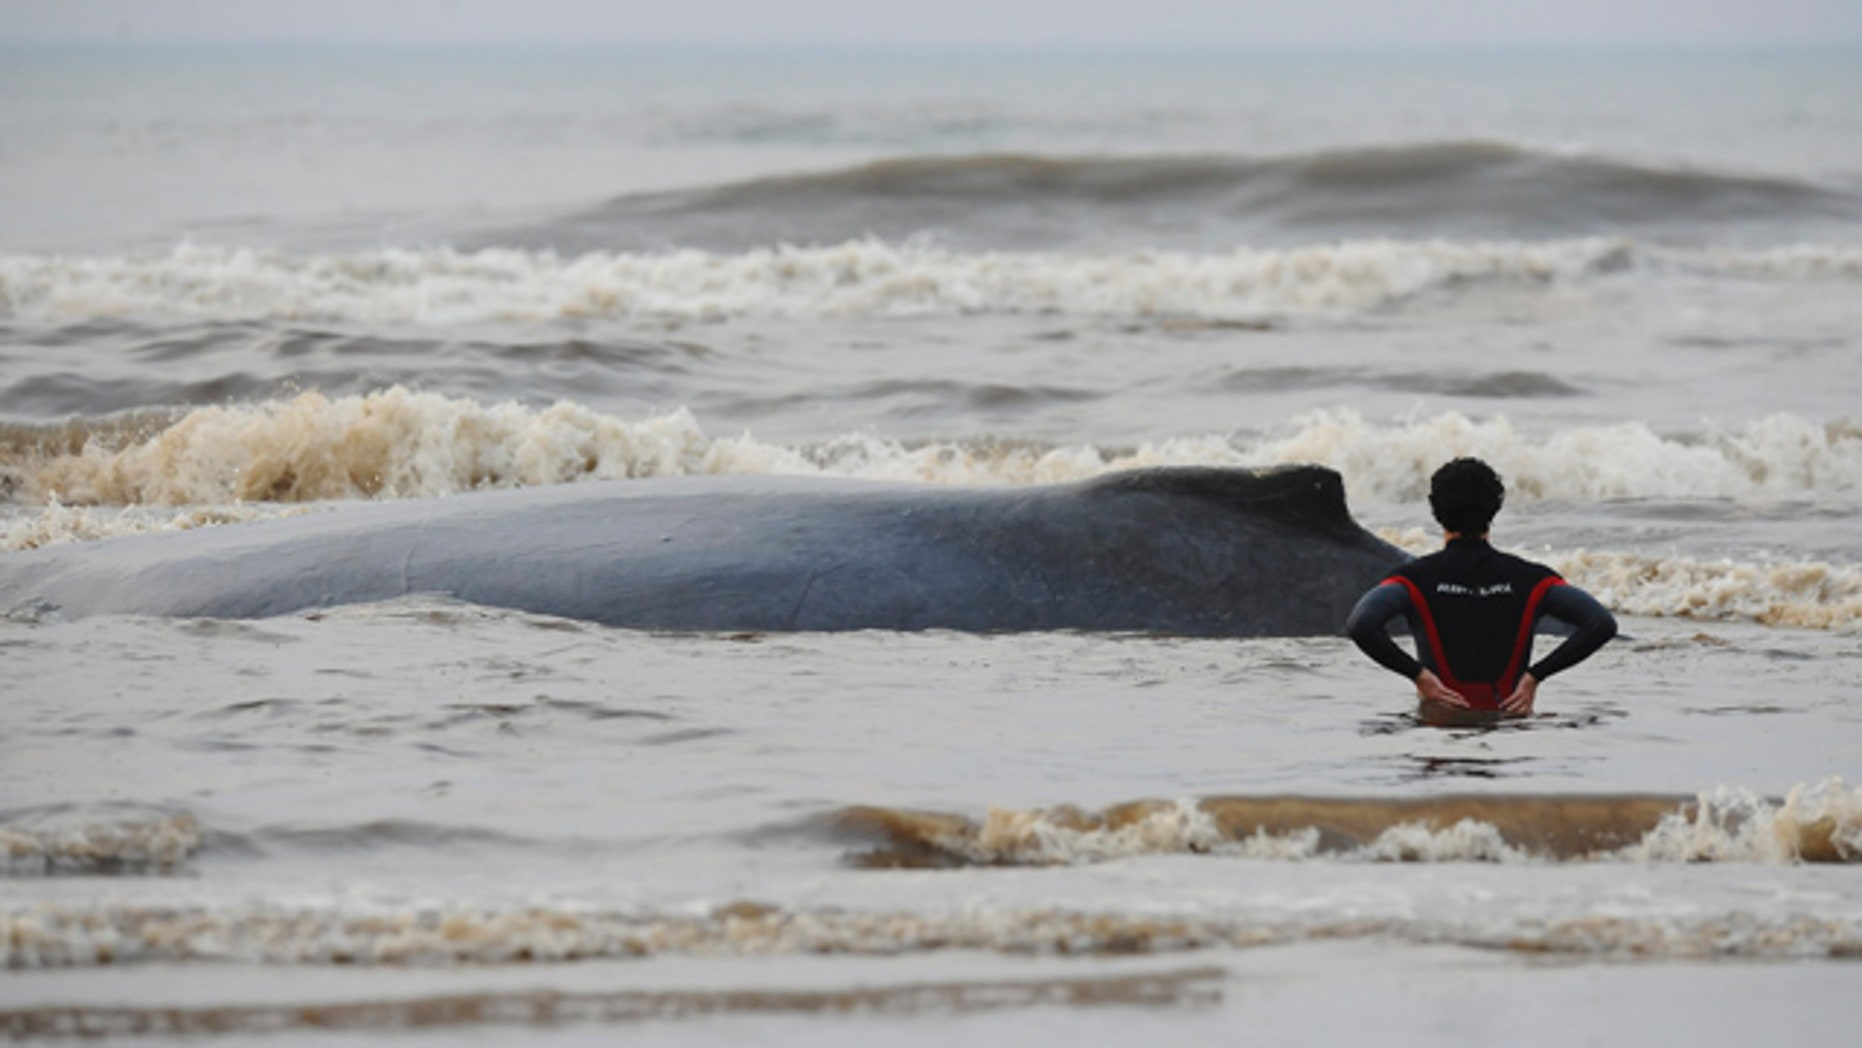 August 24: A man watches a beached whale at the Capao da Canoa beach in the Brazilian southern state of Rio Grande do Sul. (AP)